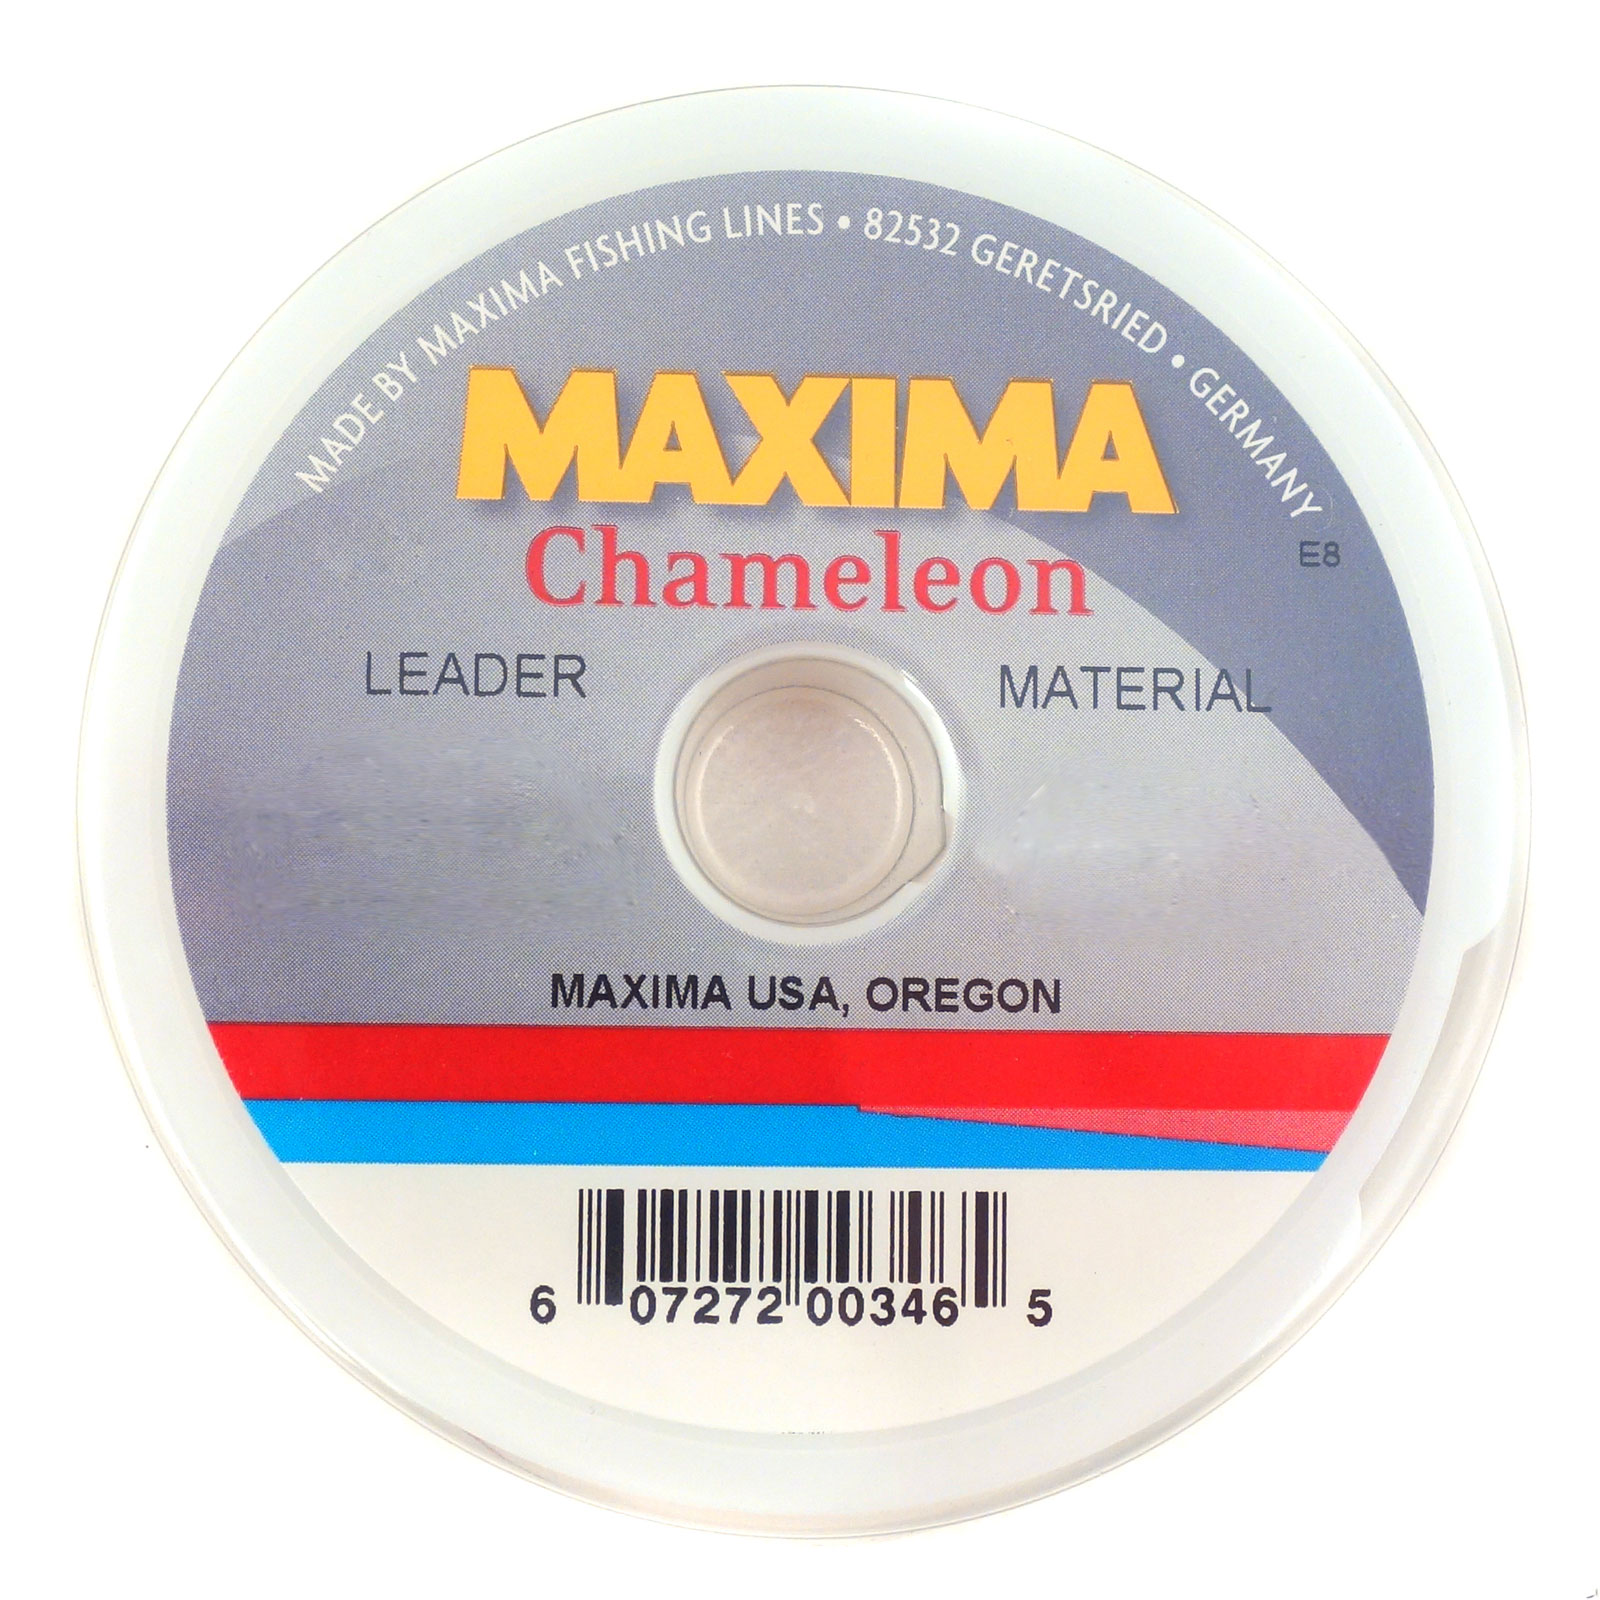 MAXIMA CHAMELEON,- 9FT.- 5X- 3LB., FLY FISHING LEADERS TAPERED LEADERS 6 PACK